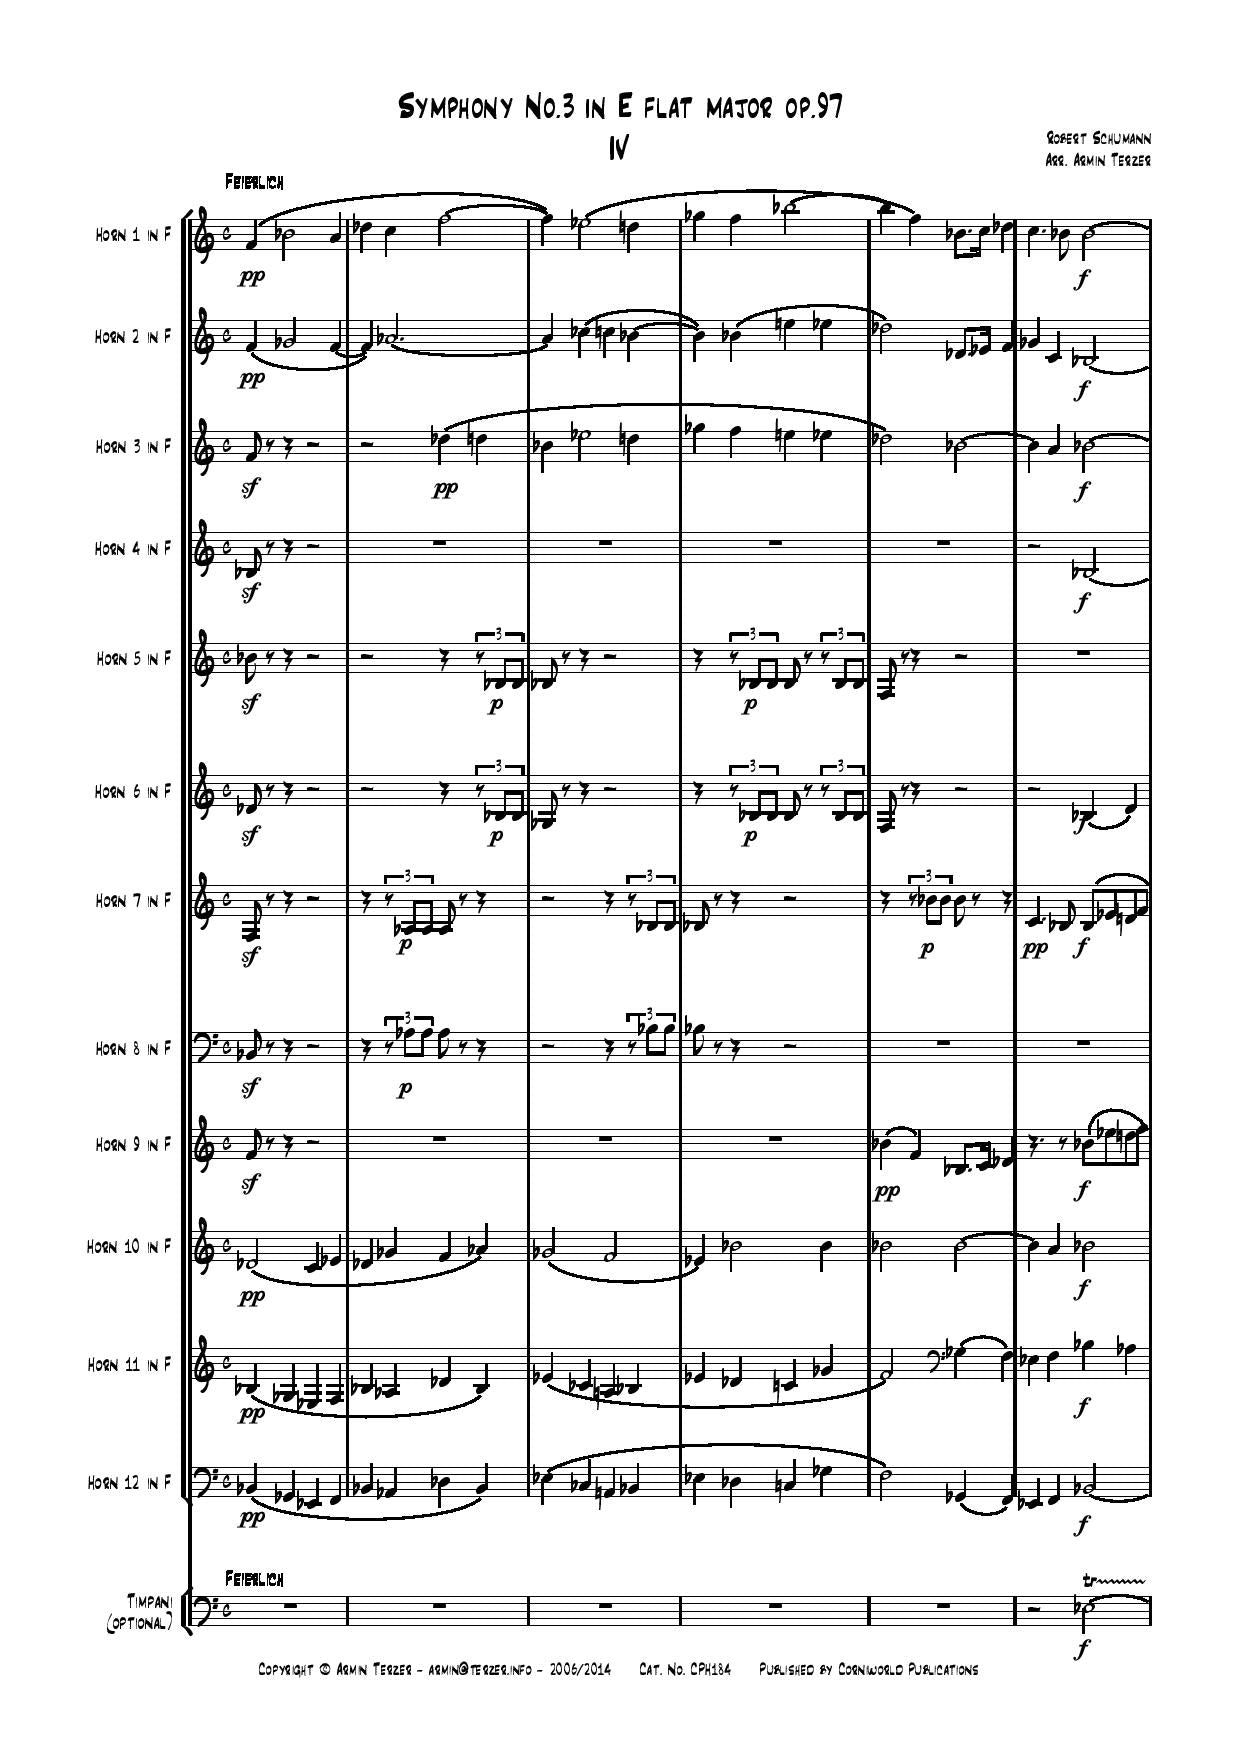 4th Mvt from Symphony No.3 - Schumann CPH184